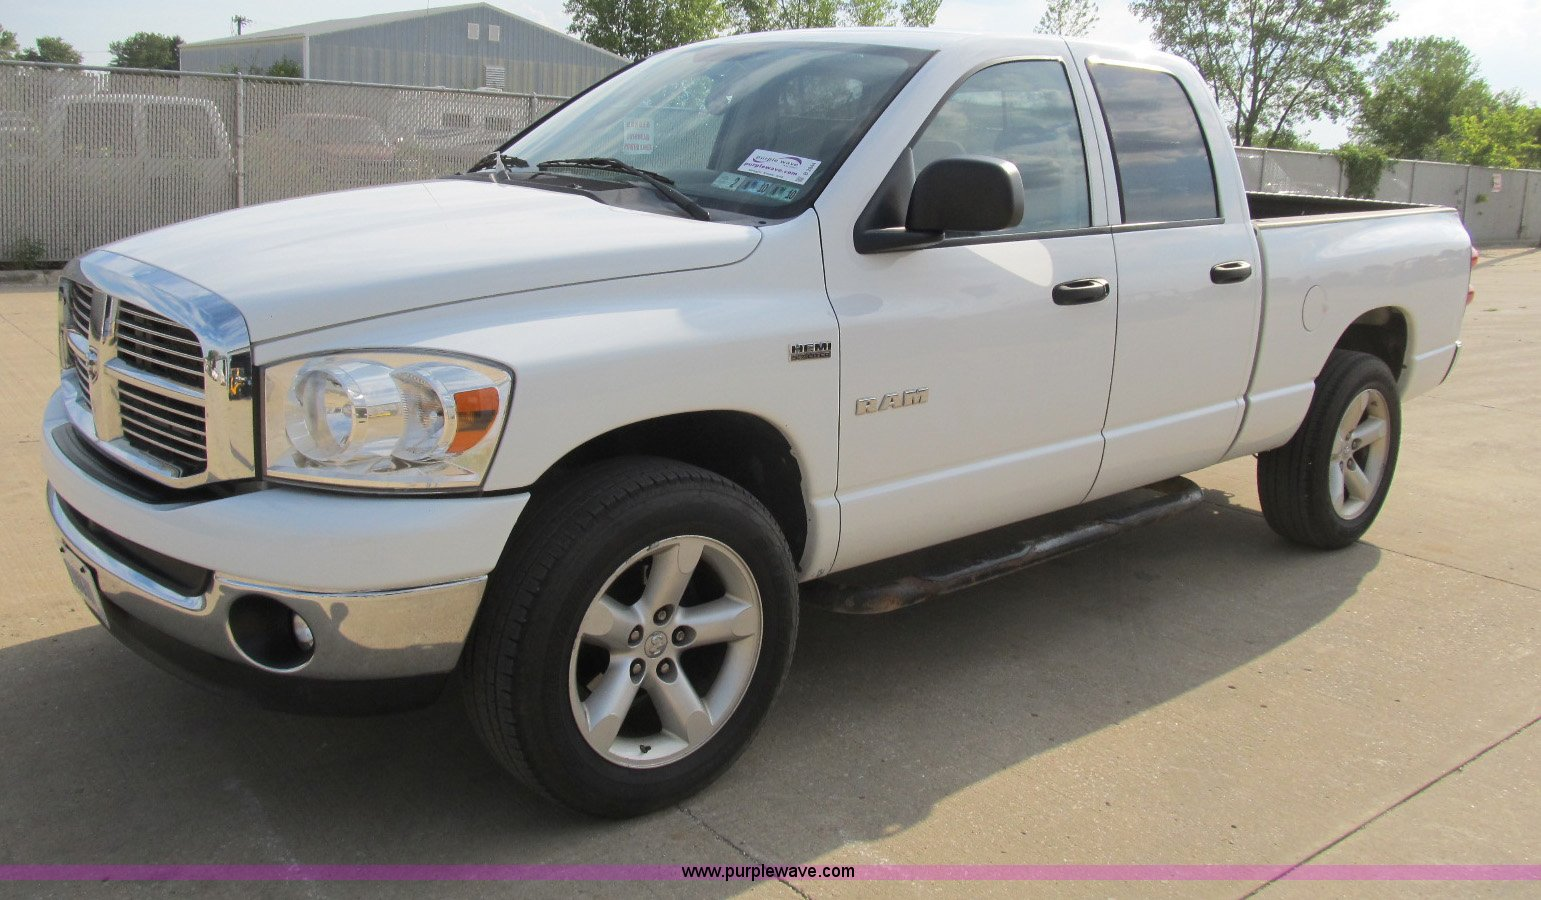 hight resolution of b2844 image for item b2844 2008 dodge ram 1500 big horn edition quad cab